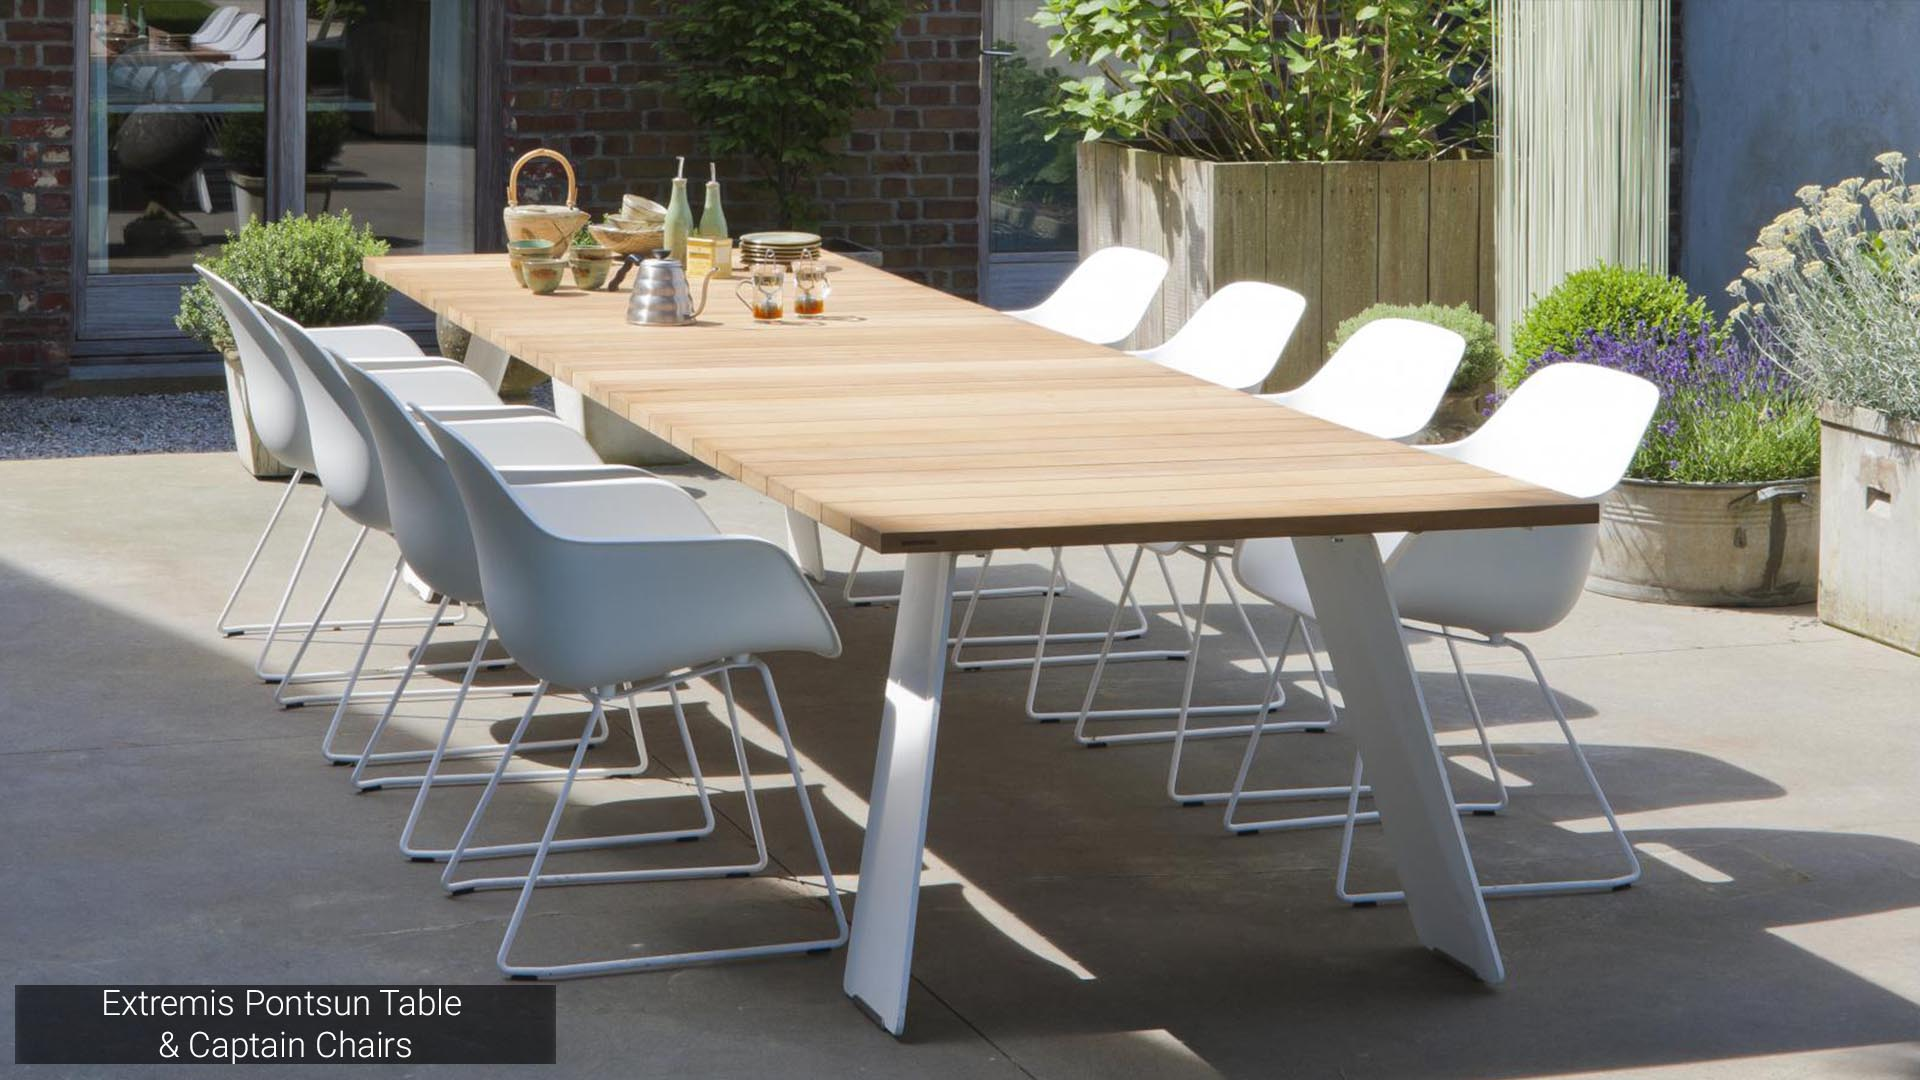 Extremis Pontsun Table & Captain Chairs